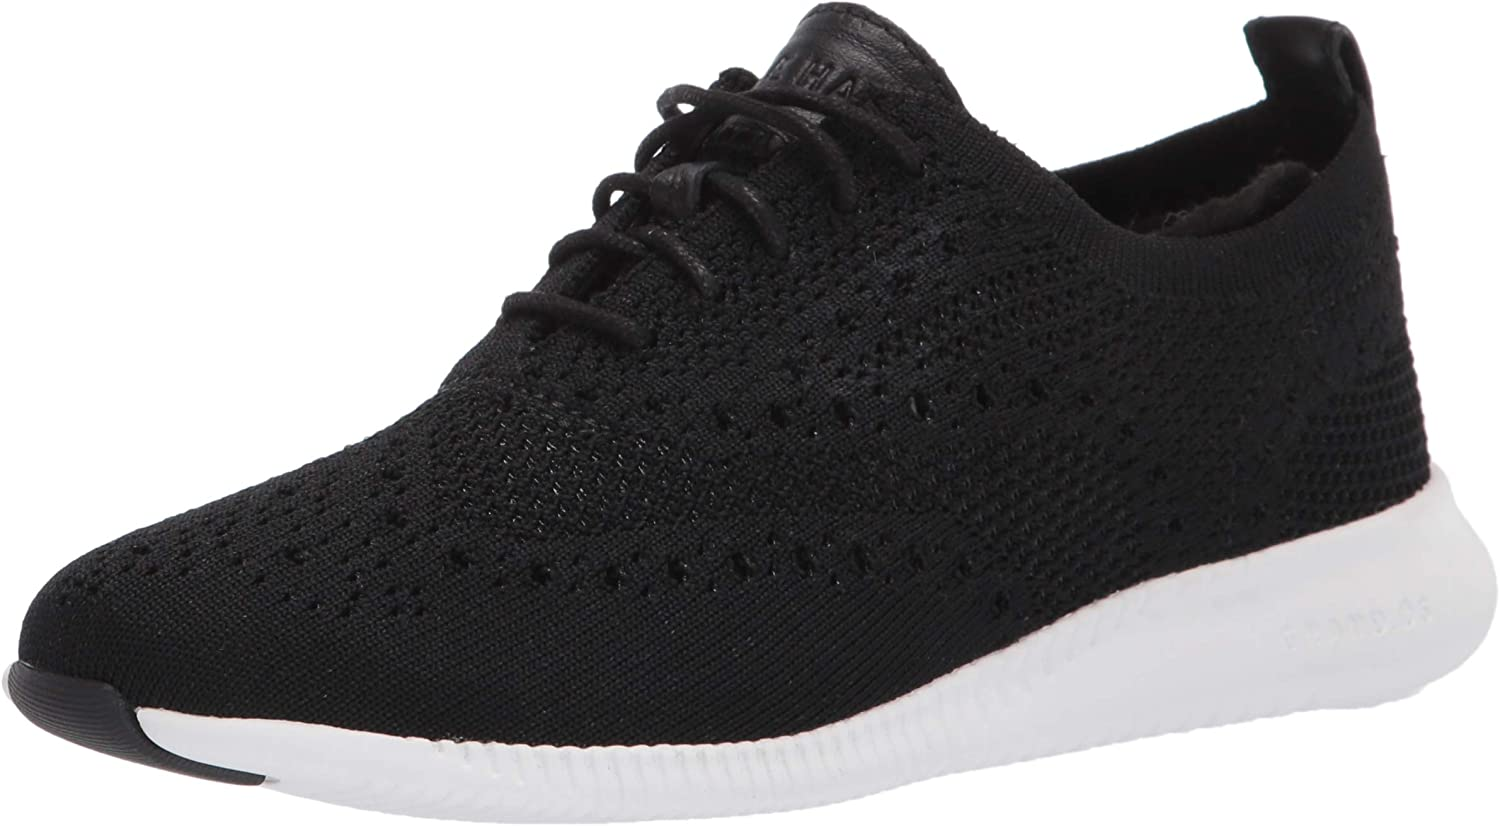 Cole Haan Women's 2.Zerogrand Stitchlite Oxford